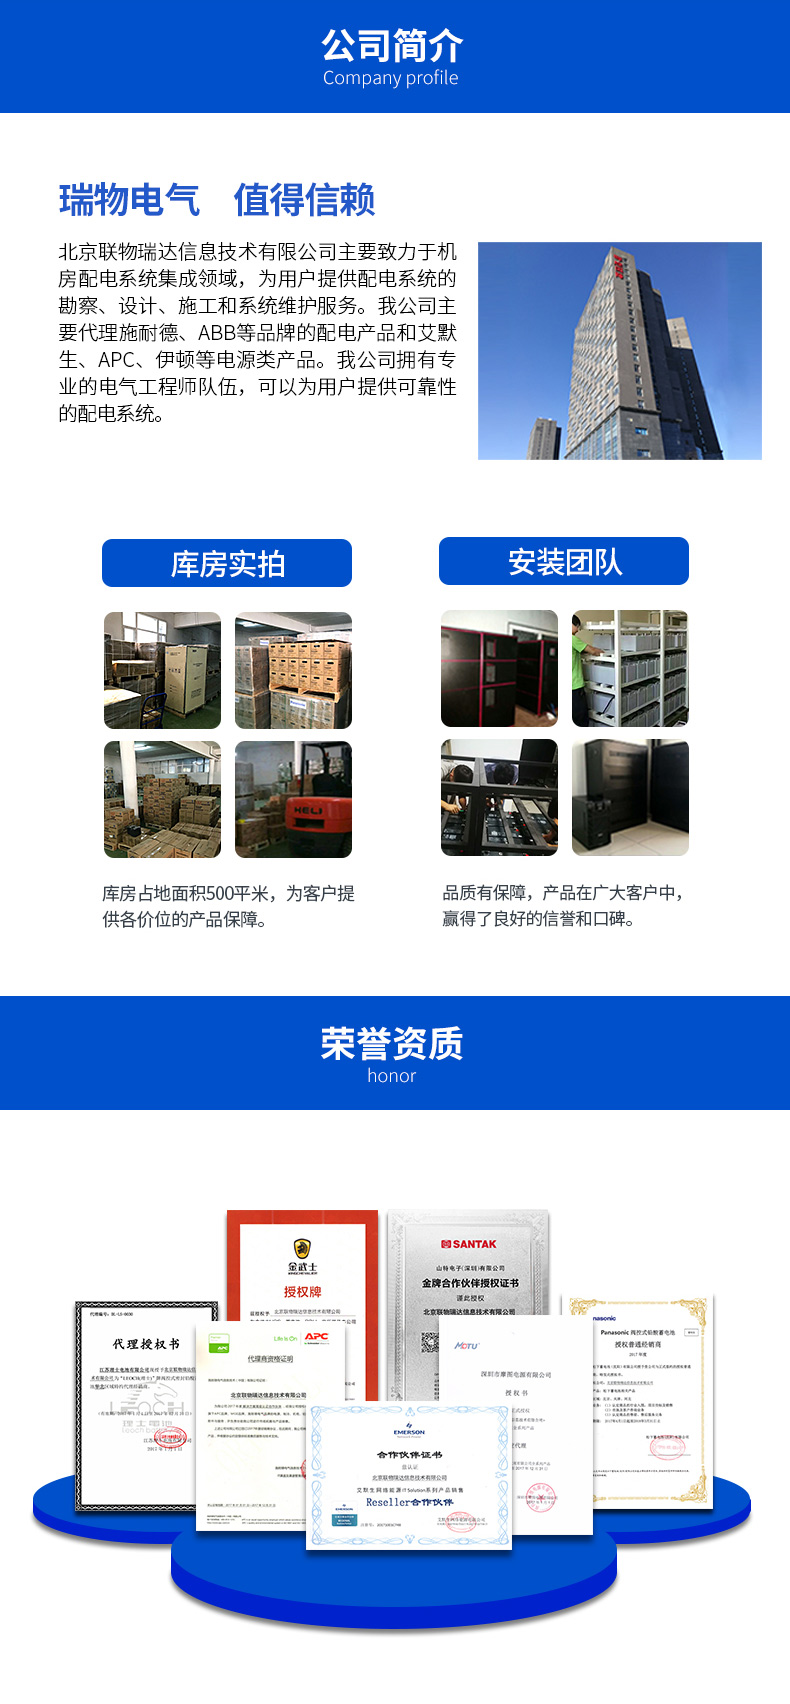 产品介绍http://www.power86.com/rs1/battery/2564/2565/5391/5391_c7.jpg